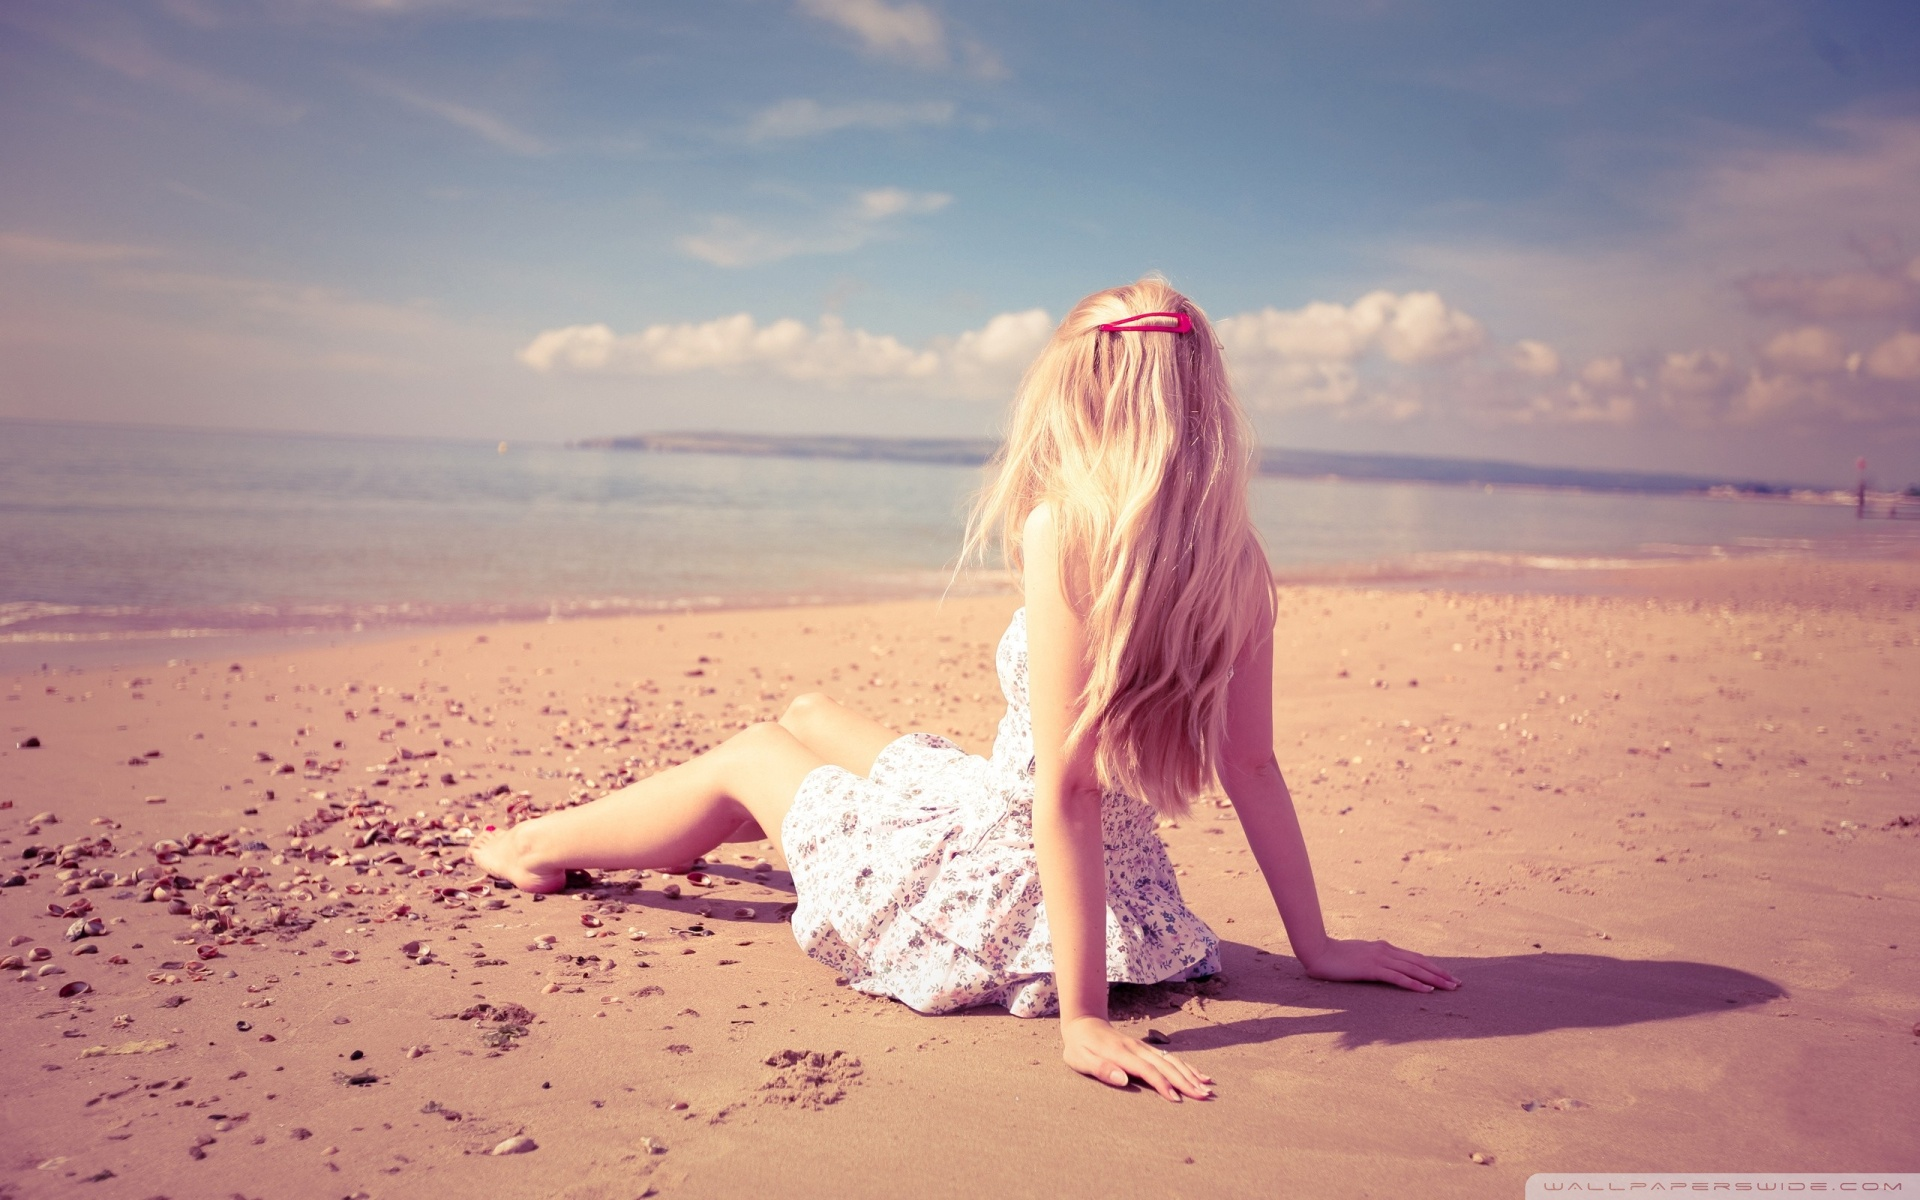 Download Hot Blonde Girl On The Beach Wallpaper 1920x1200